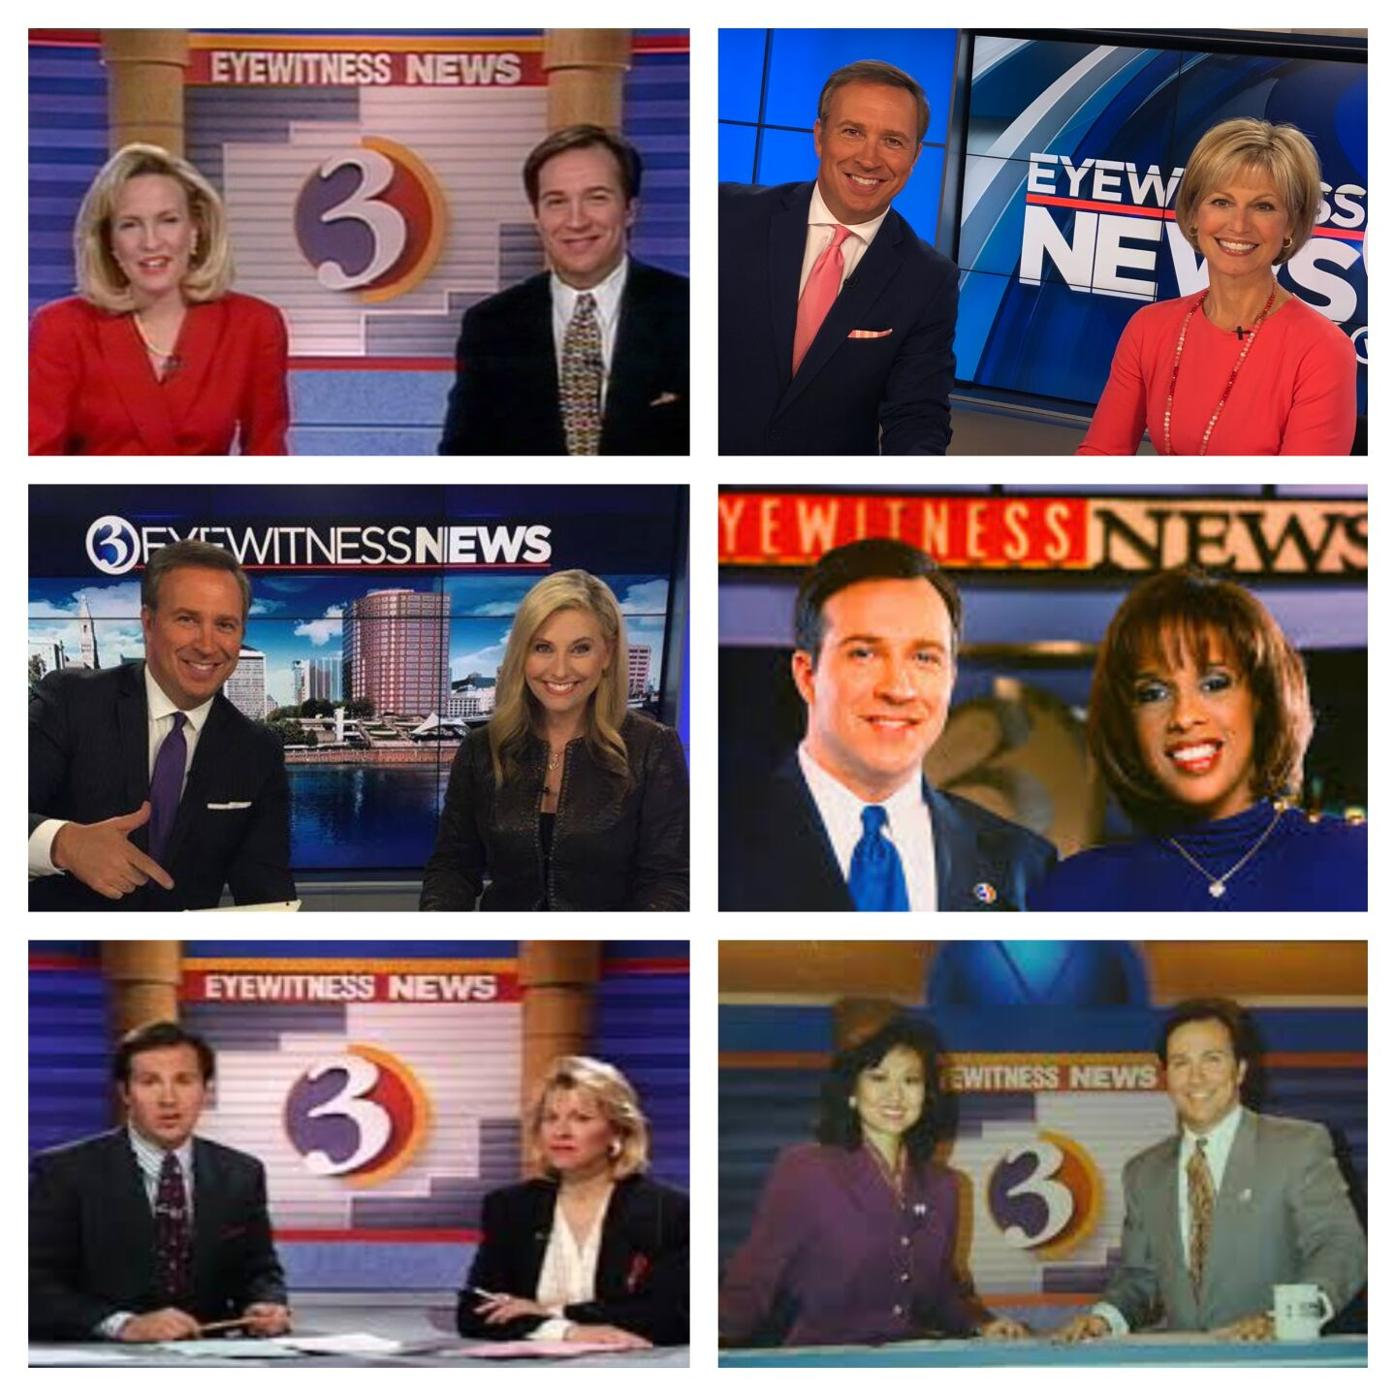 Dennis House and other Ch. 3 anchors